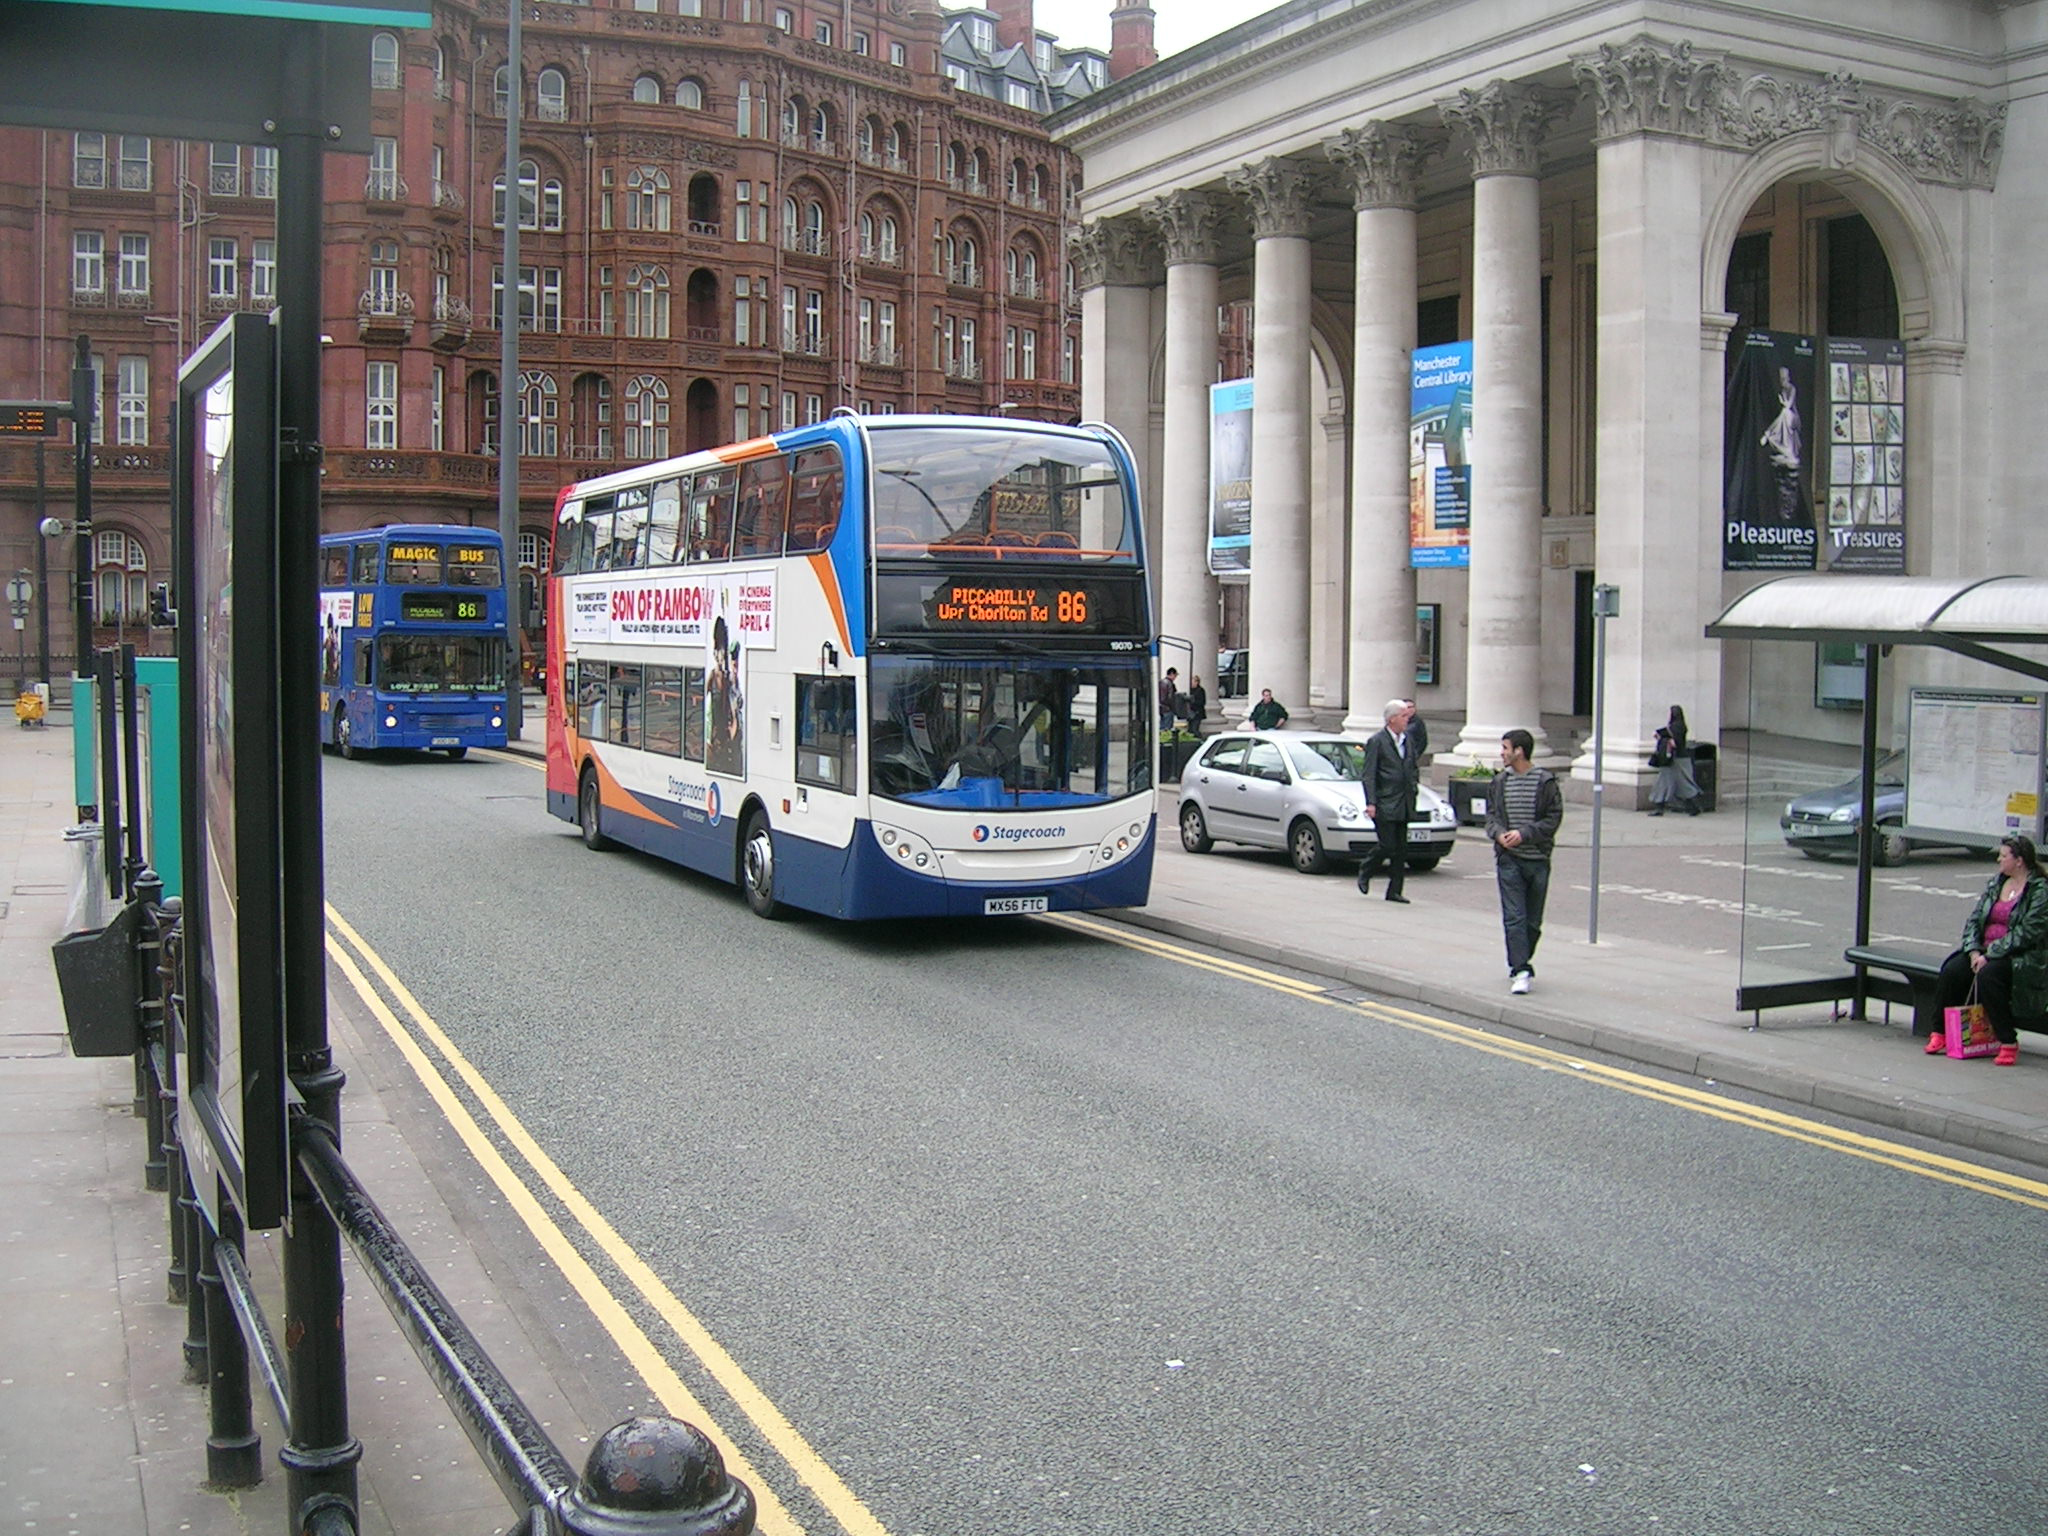 FileStagecoach in Manchester bus MX56 FTCjpg Wikimedia Commons